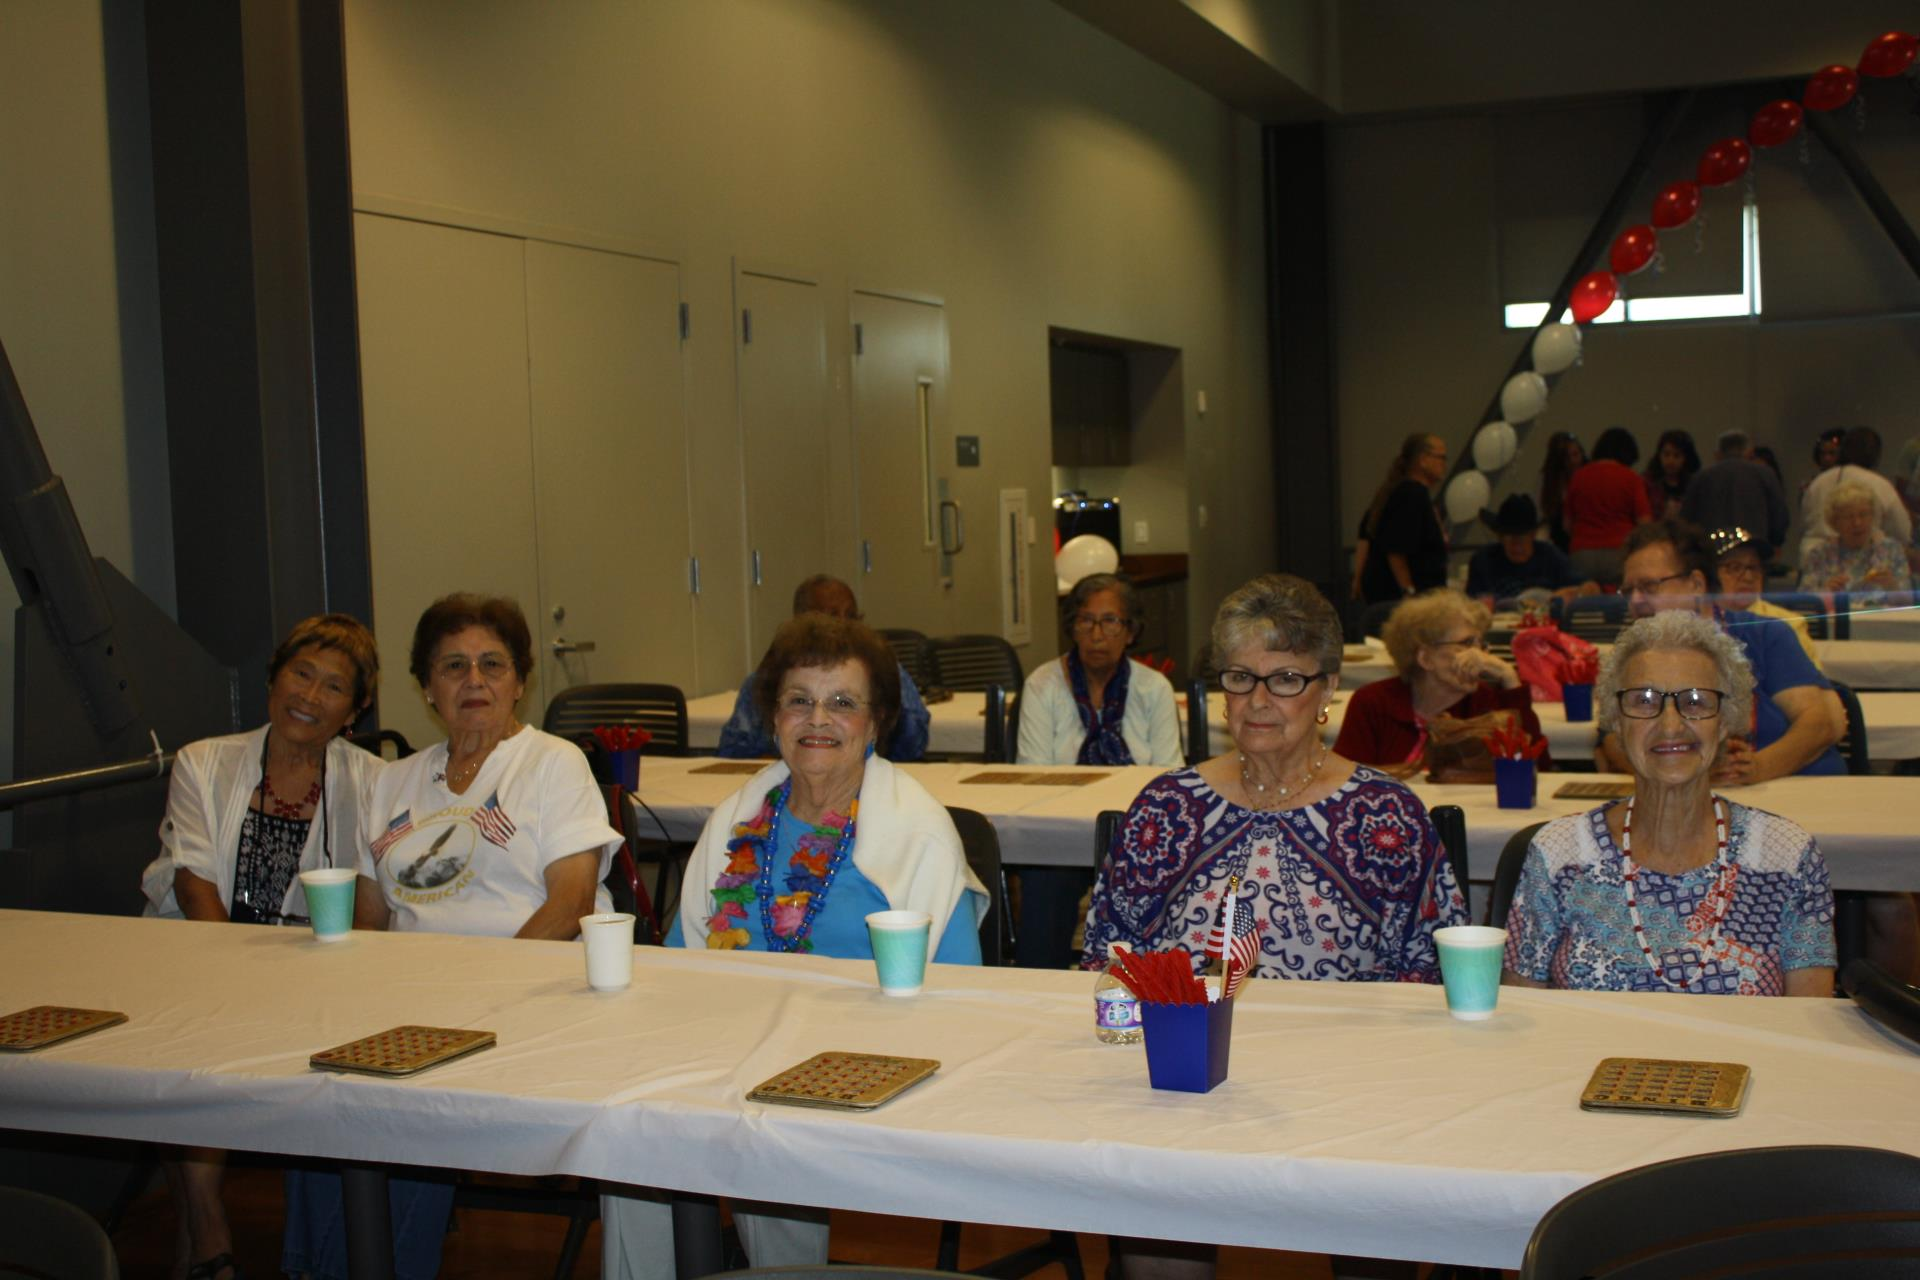 Fab 4th senior celebration at community center